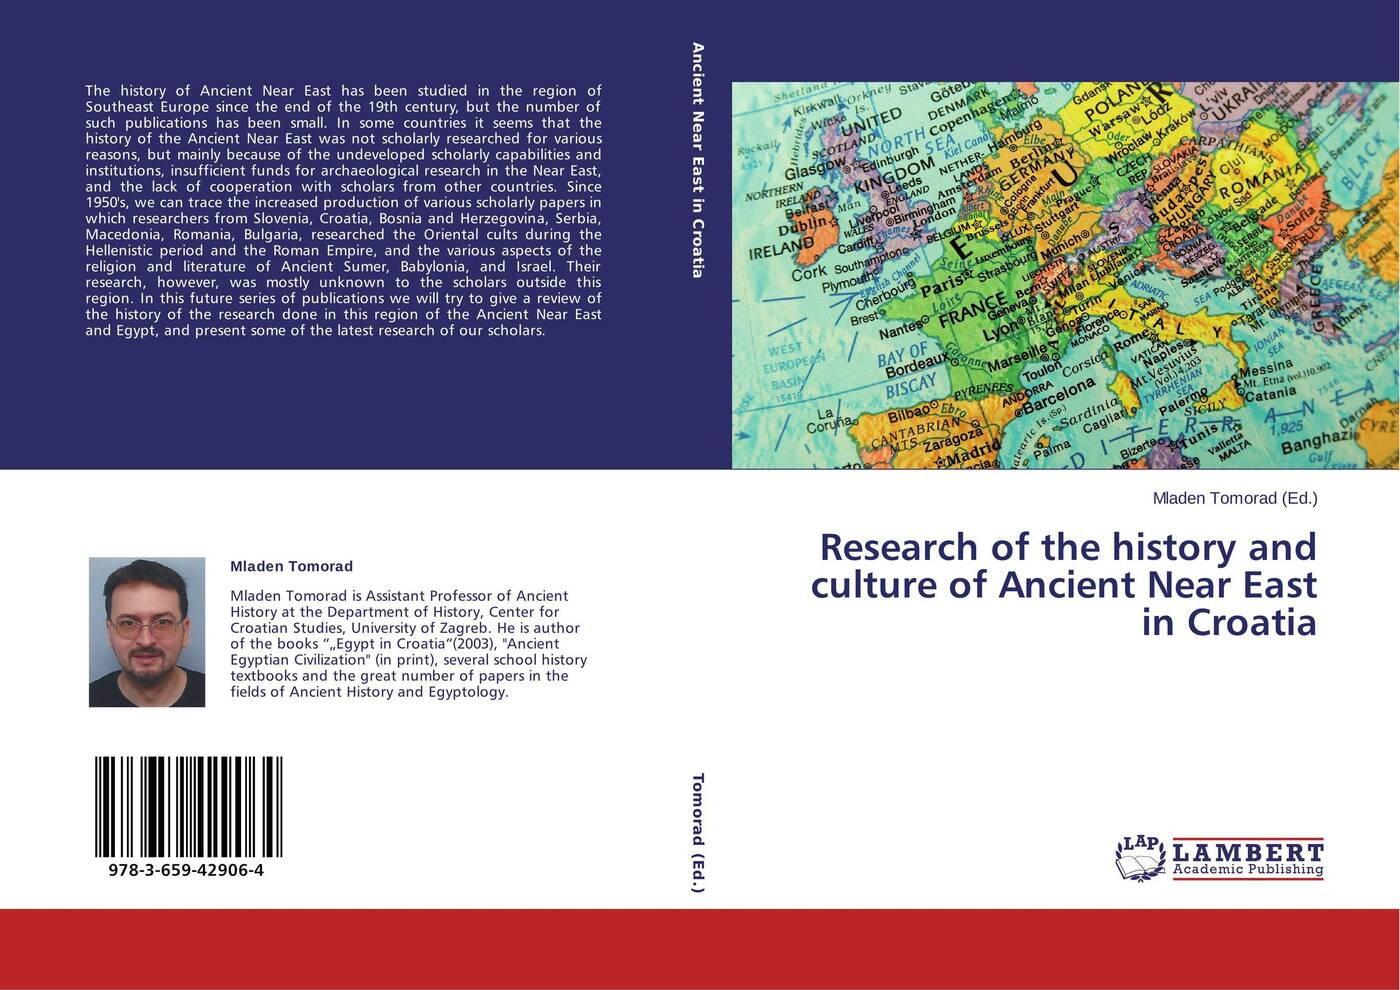 Mladen Tomorad Research of the history and culture of Ancient Near East in Croatia hegel the end of history and the future